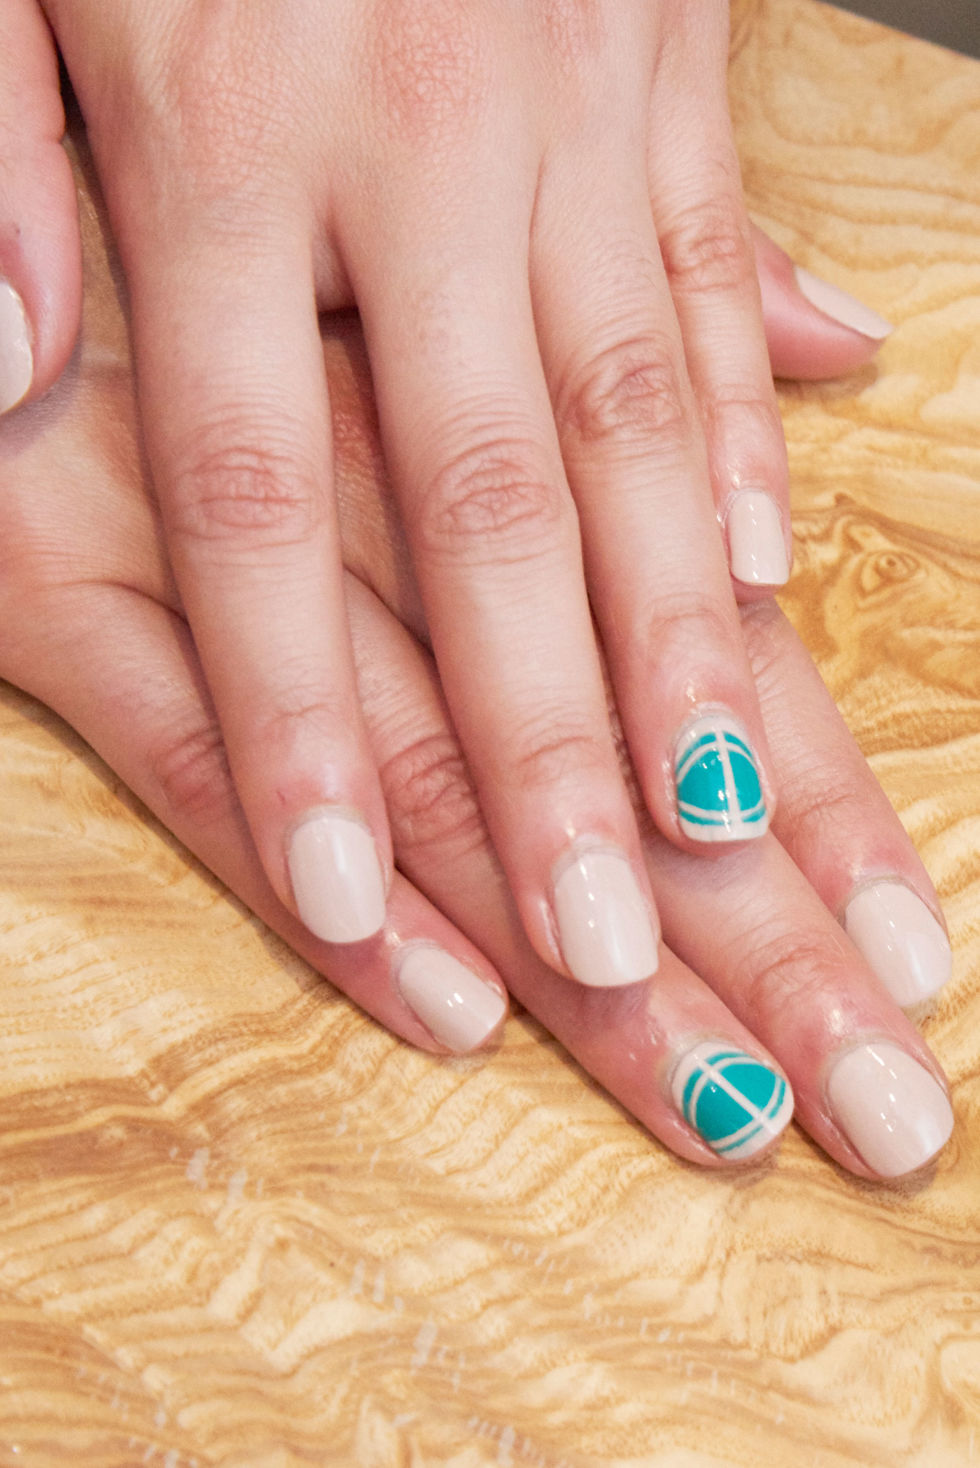 Structure with a touch of whimsy is the vibe for this astrological mashup. Detail-oriented Virgos will identify with clean Virgo-Go Pink polish and a neatly stenciled graphic design. That bright turquoise? Chalk it up to Age of Aquarius's inventive, free-flowing nature.